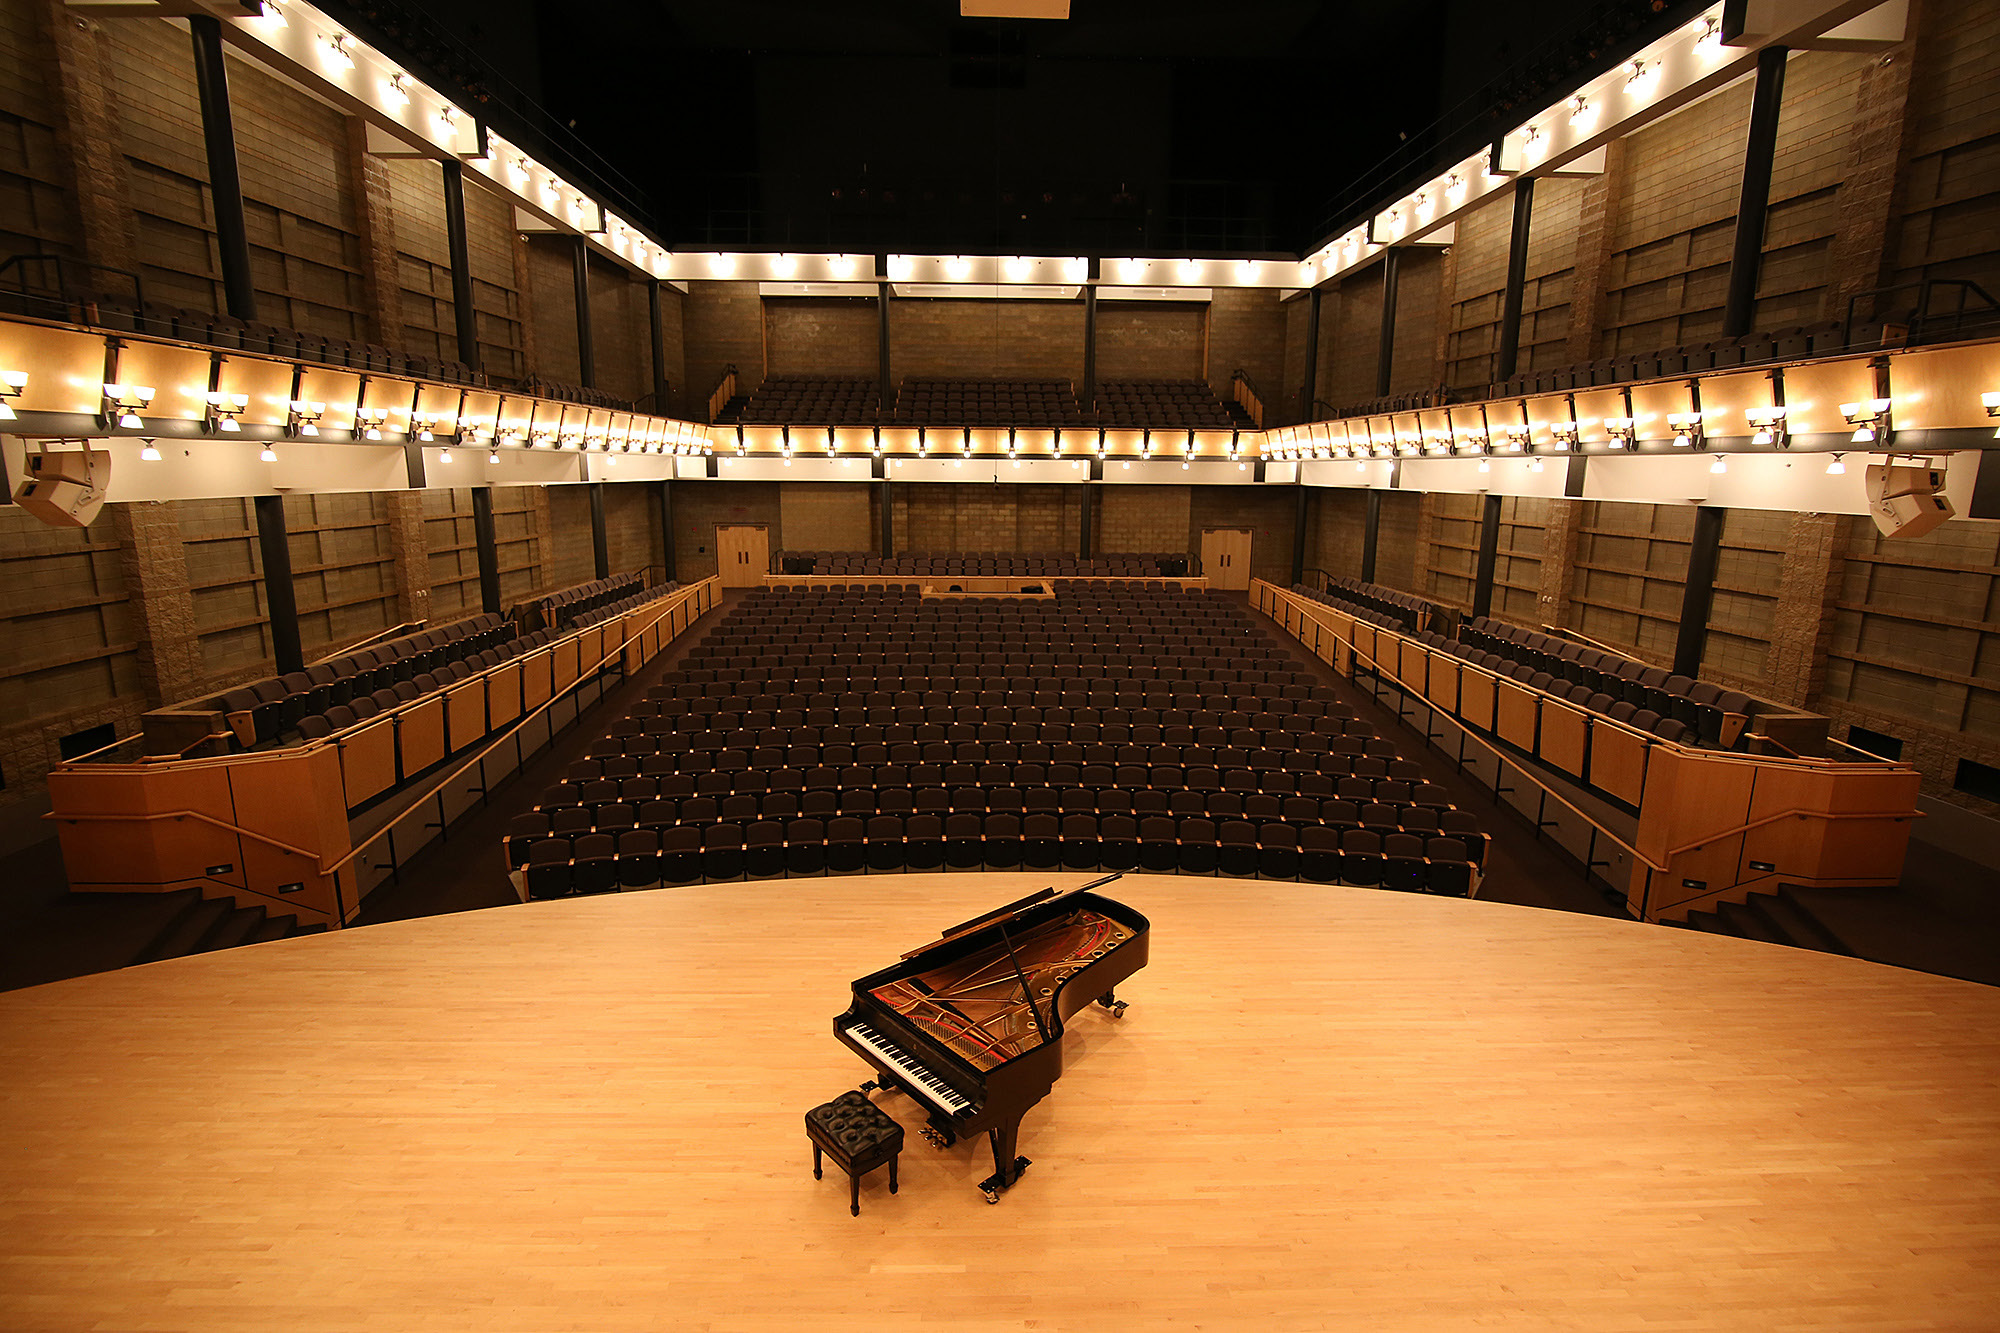 Sauder Concert Hall from the stage